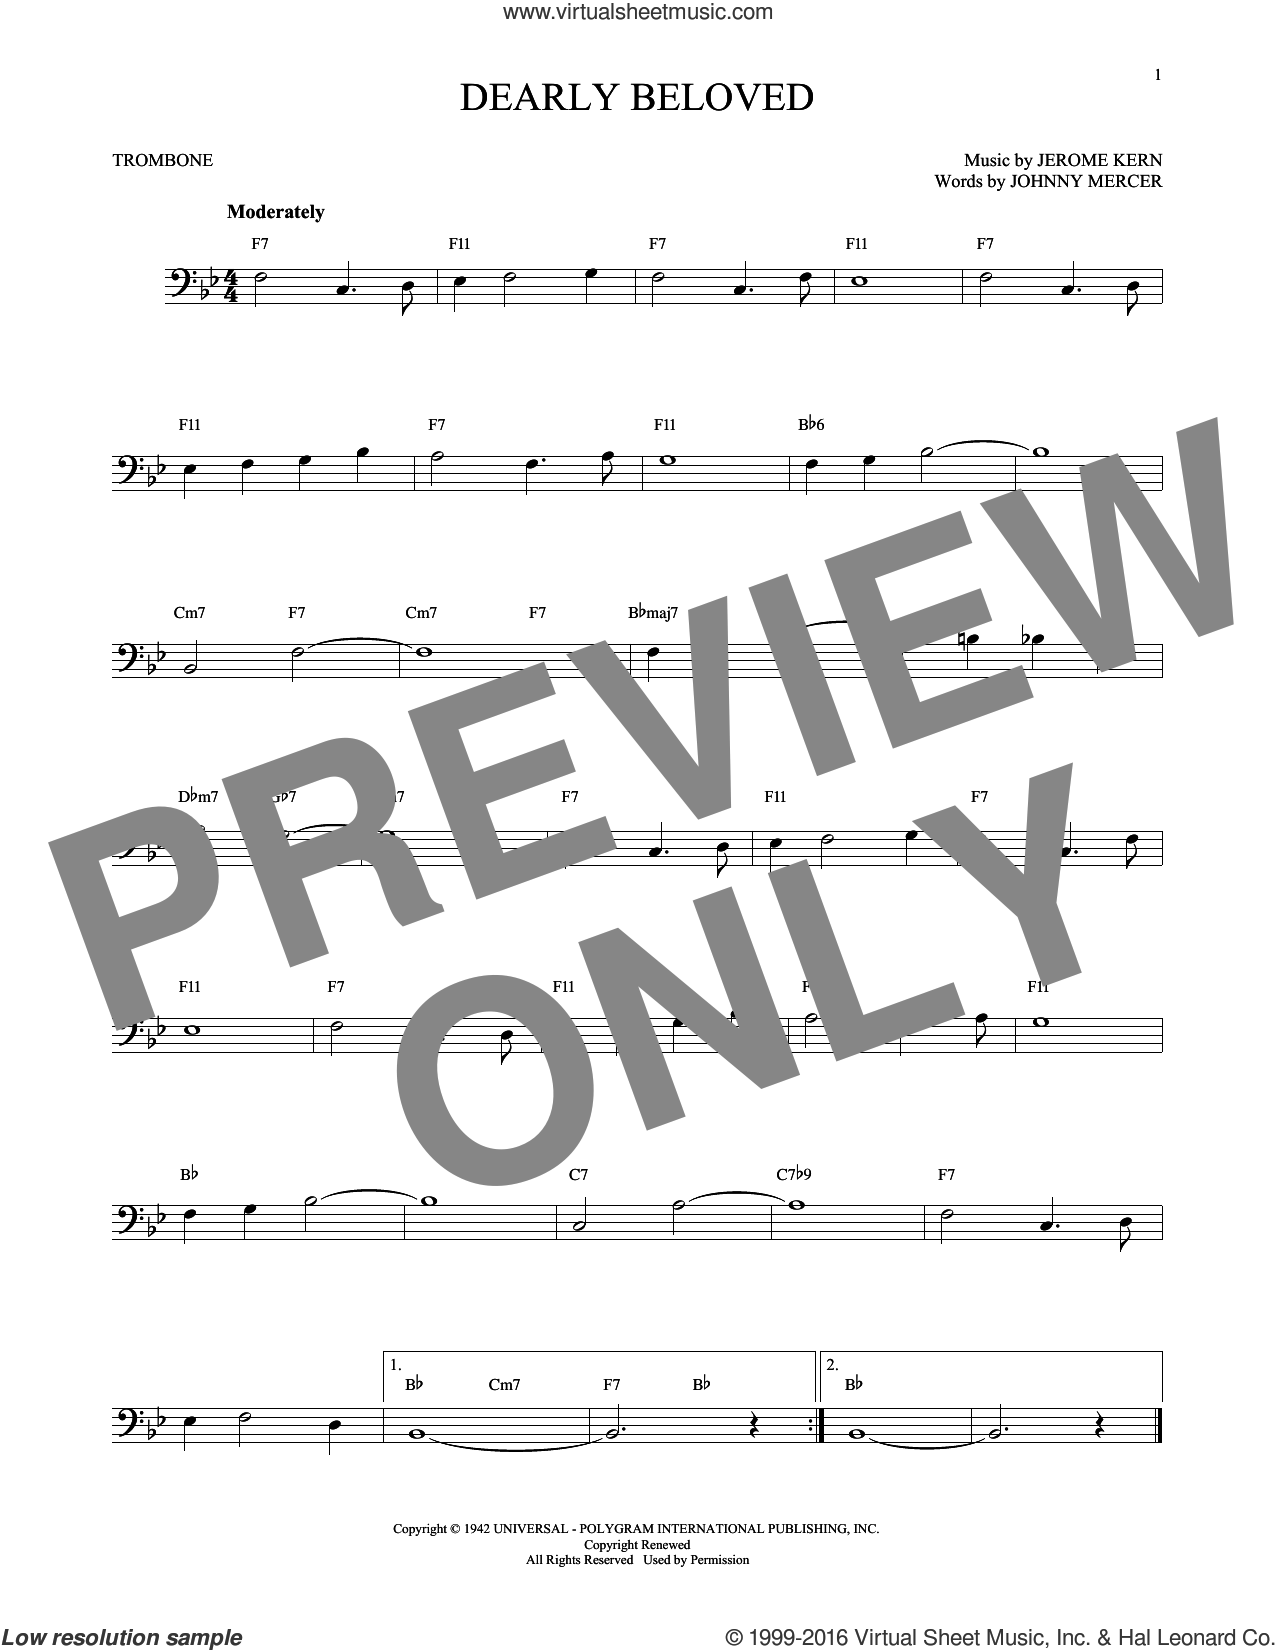 Dearly Beloved sheet music for trombone solo by Jerome Kern and Johnny Mercer, intermediate skill level